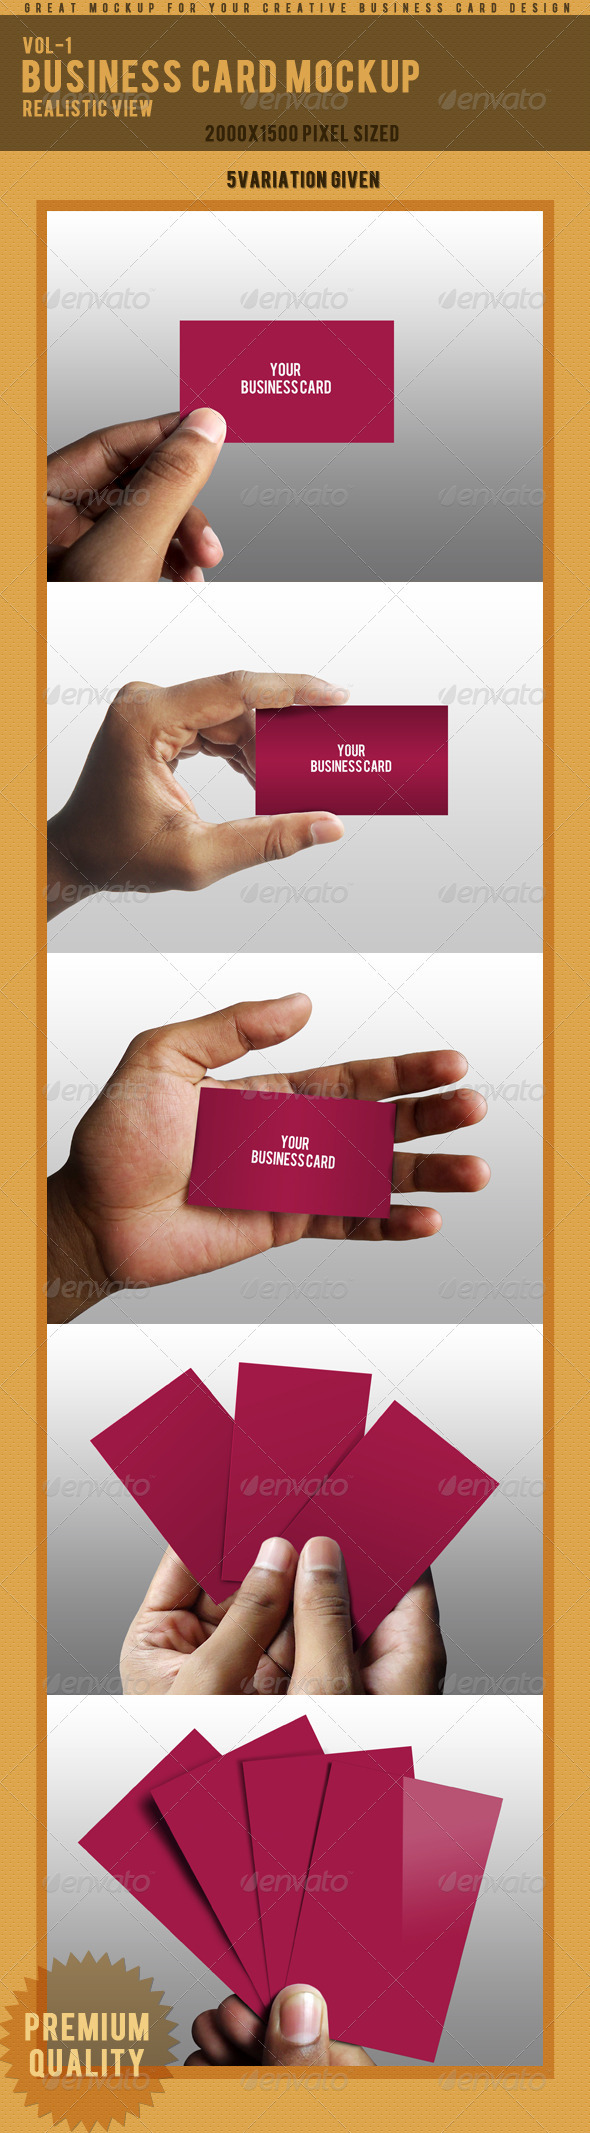 GraphicRiver Photorealistic Business Card Mockup 3725304